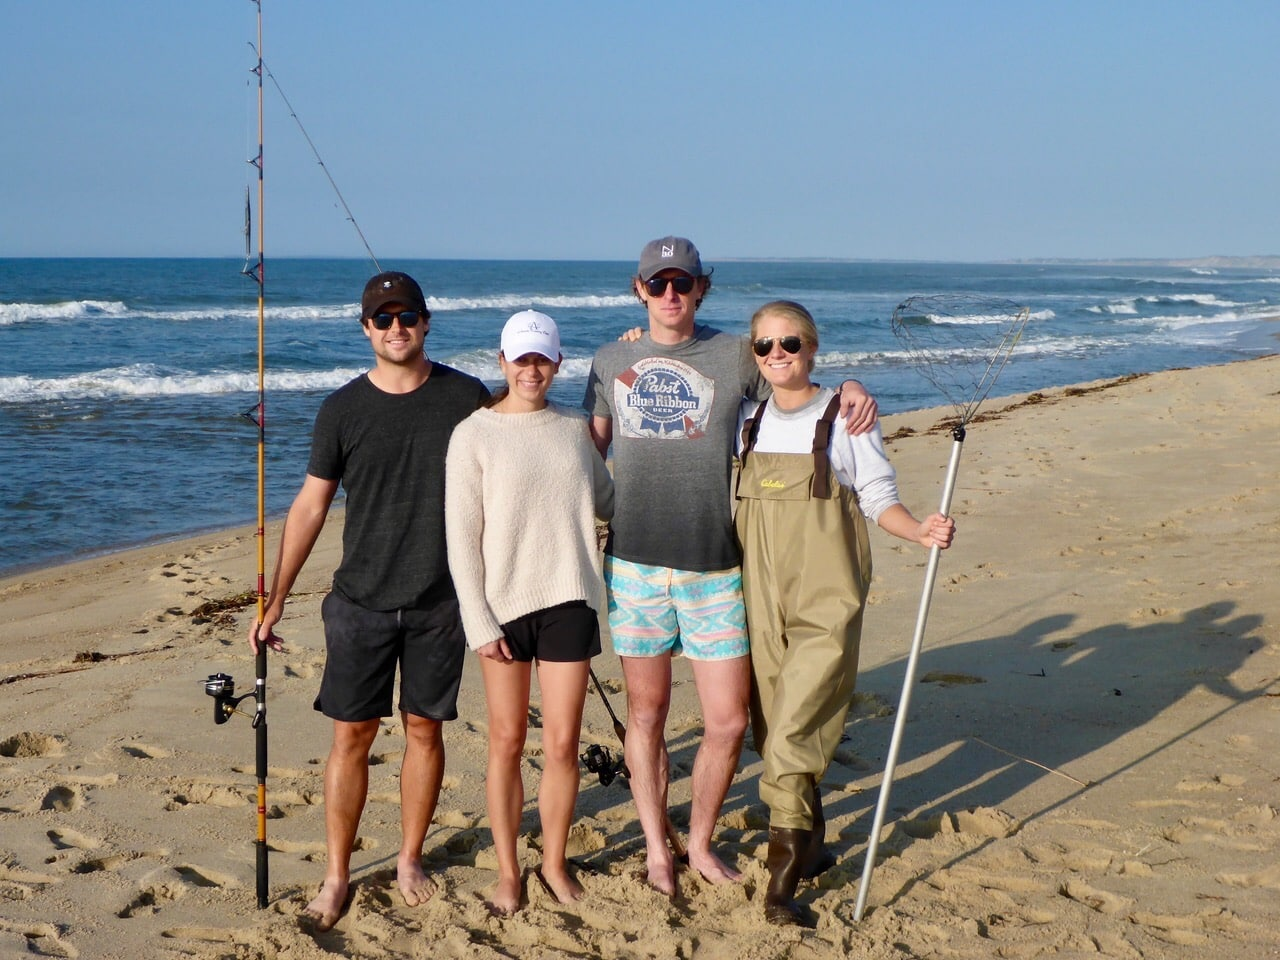 Ben Tolson in Martha's Vineyard fishing with his wife Katie Tolson and friends.